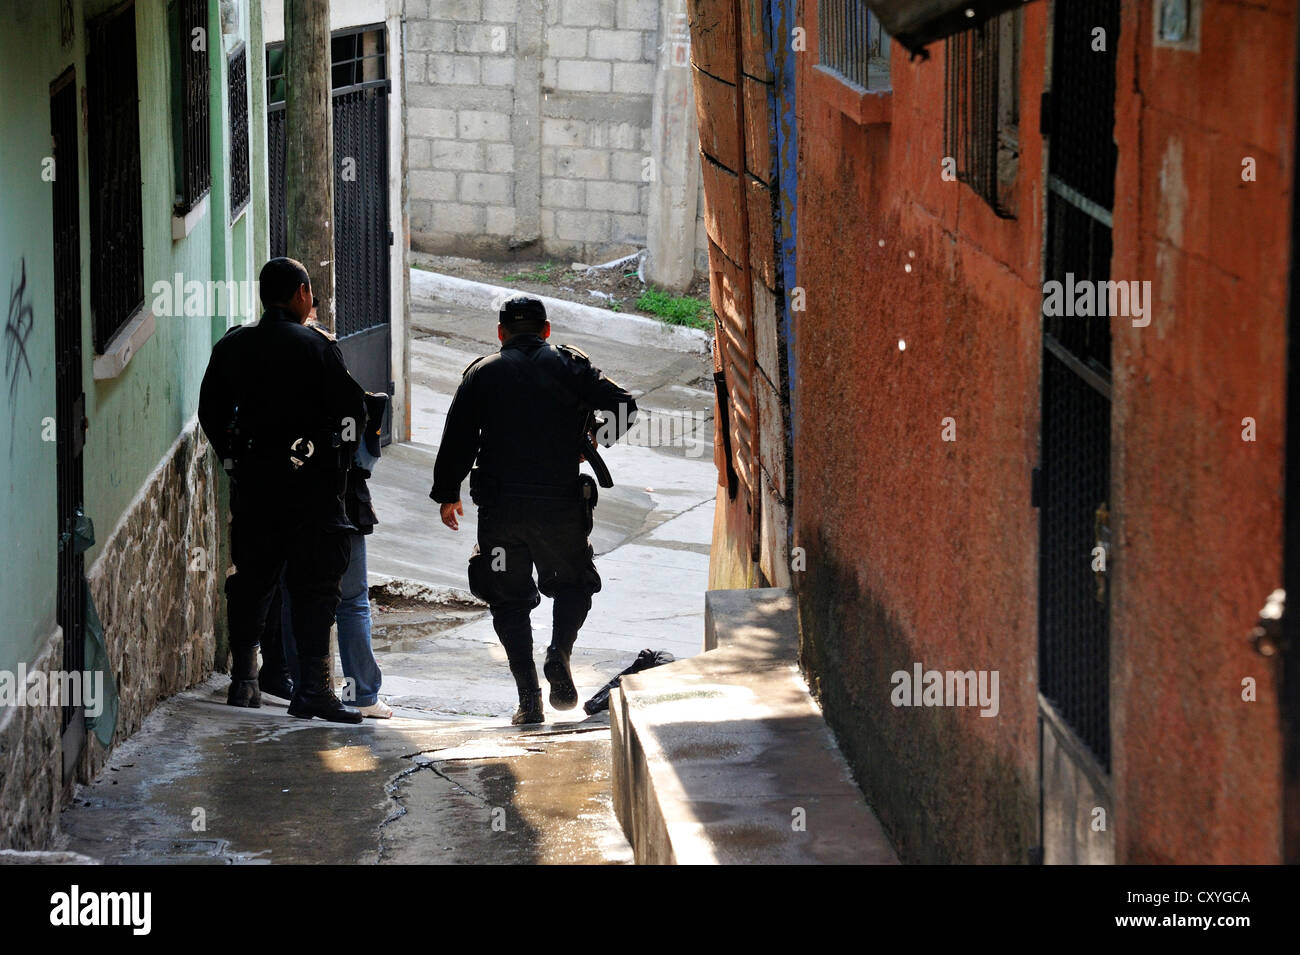 Heavily armed police units patrolling in the poor neighborhood of El Esfuerzo, the district is controlled by rivalling - Stock Image